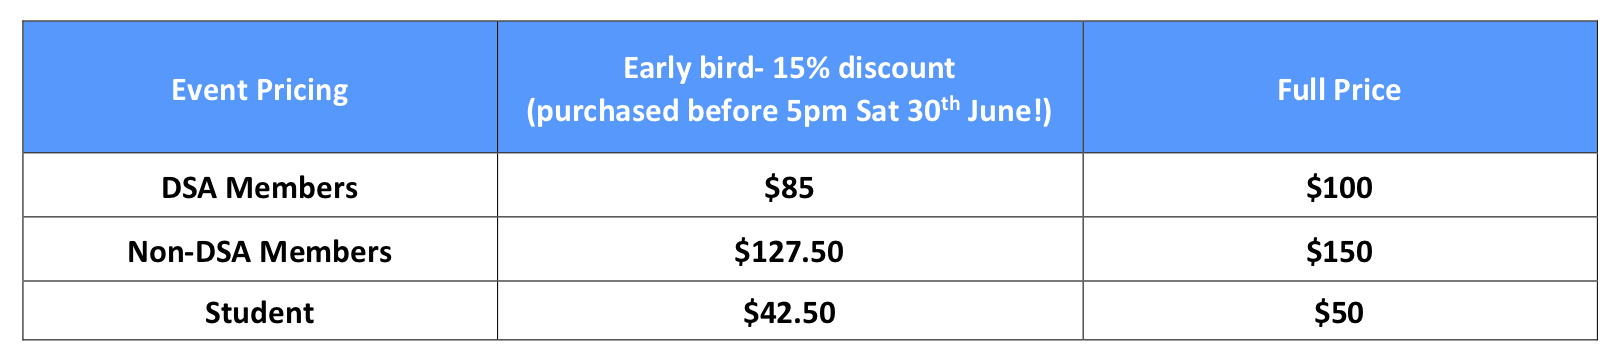 Event Pricing copy.png